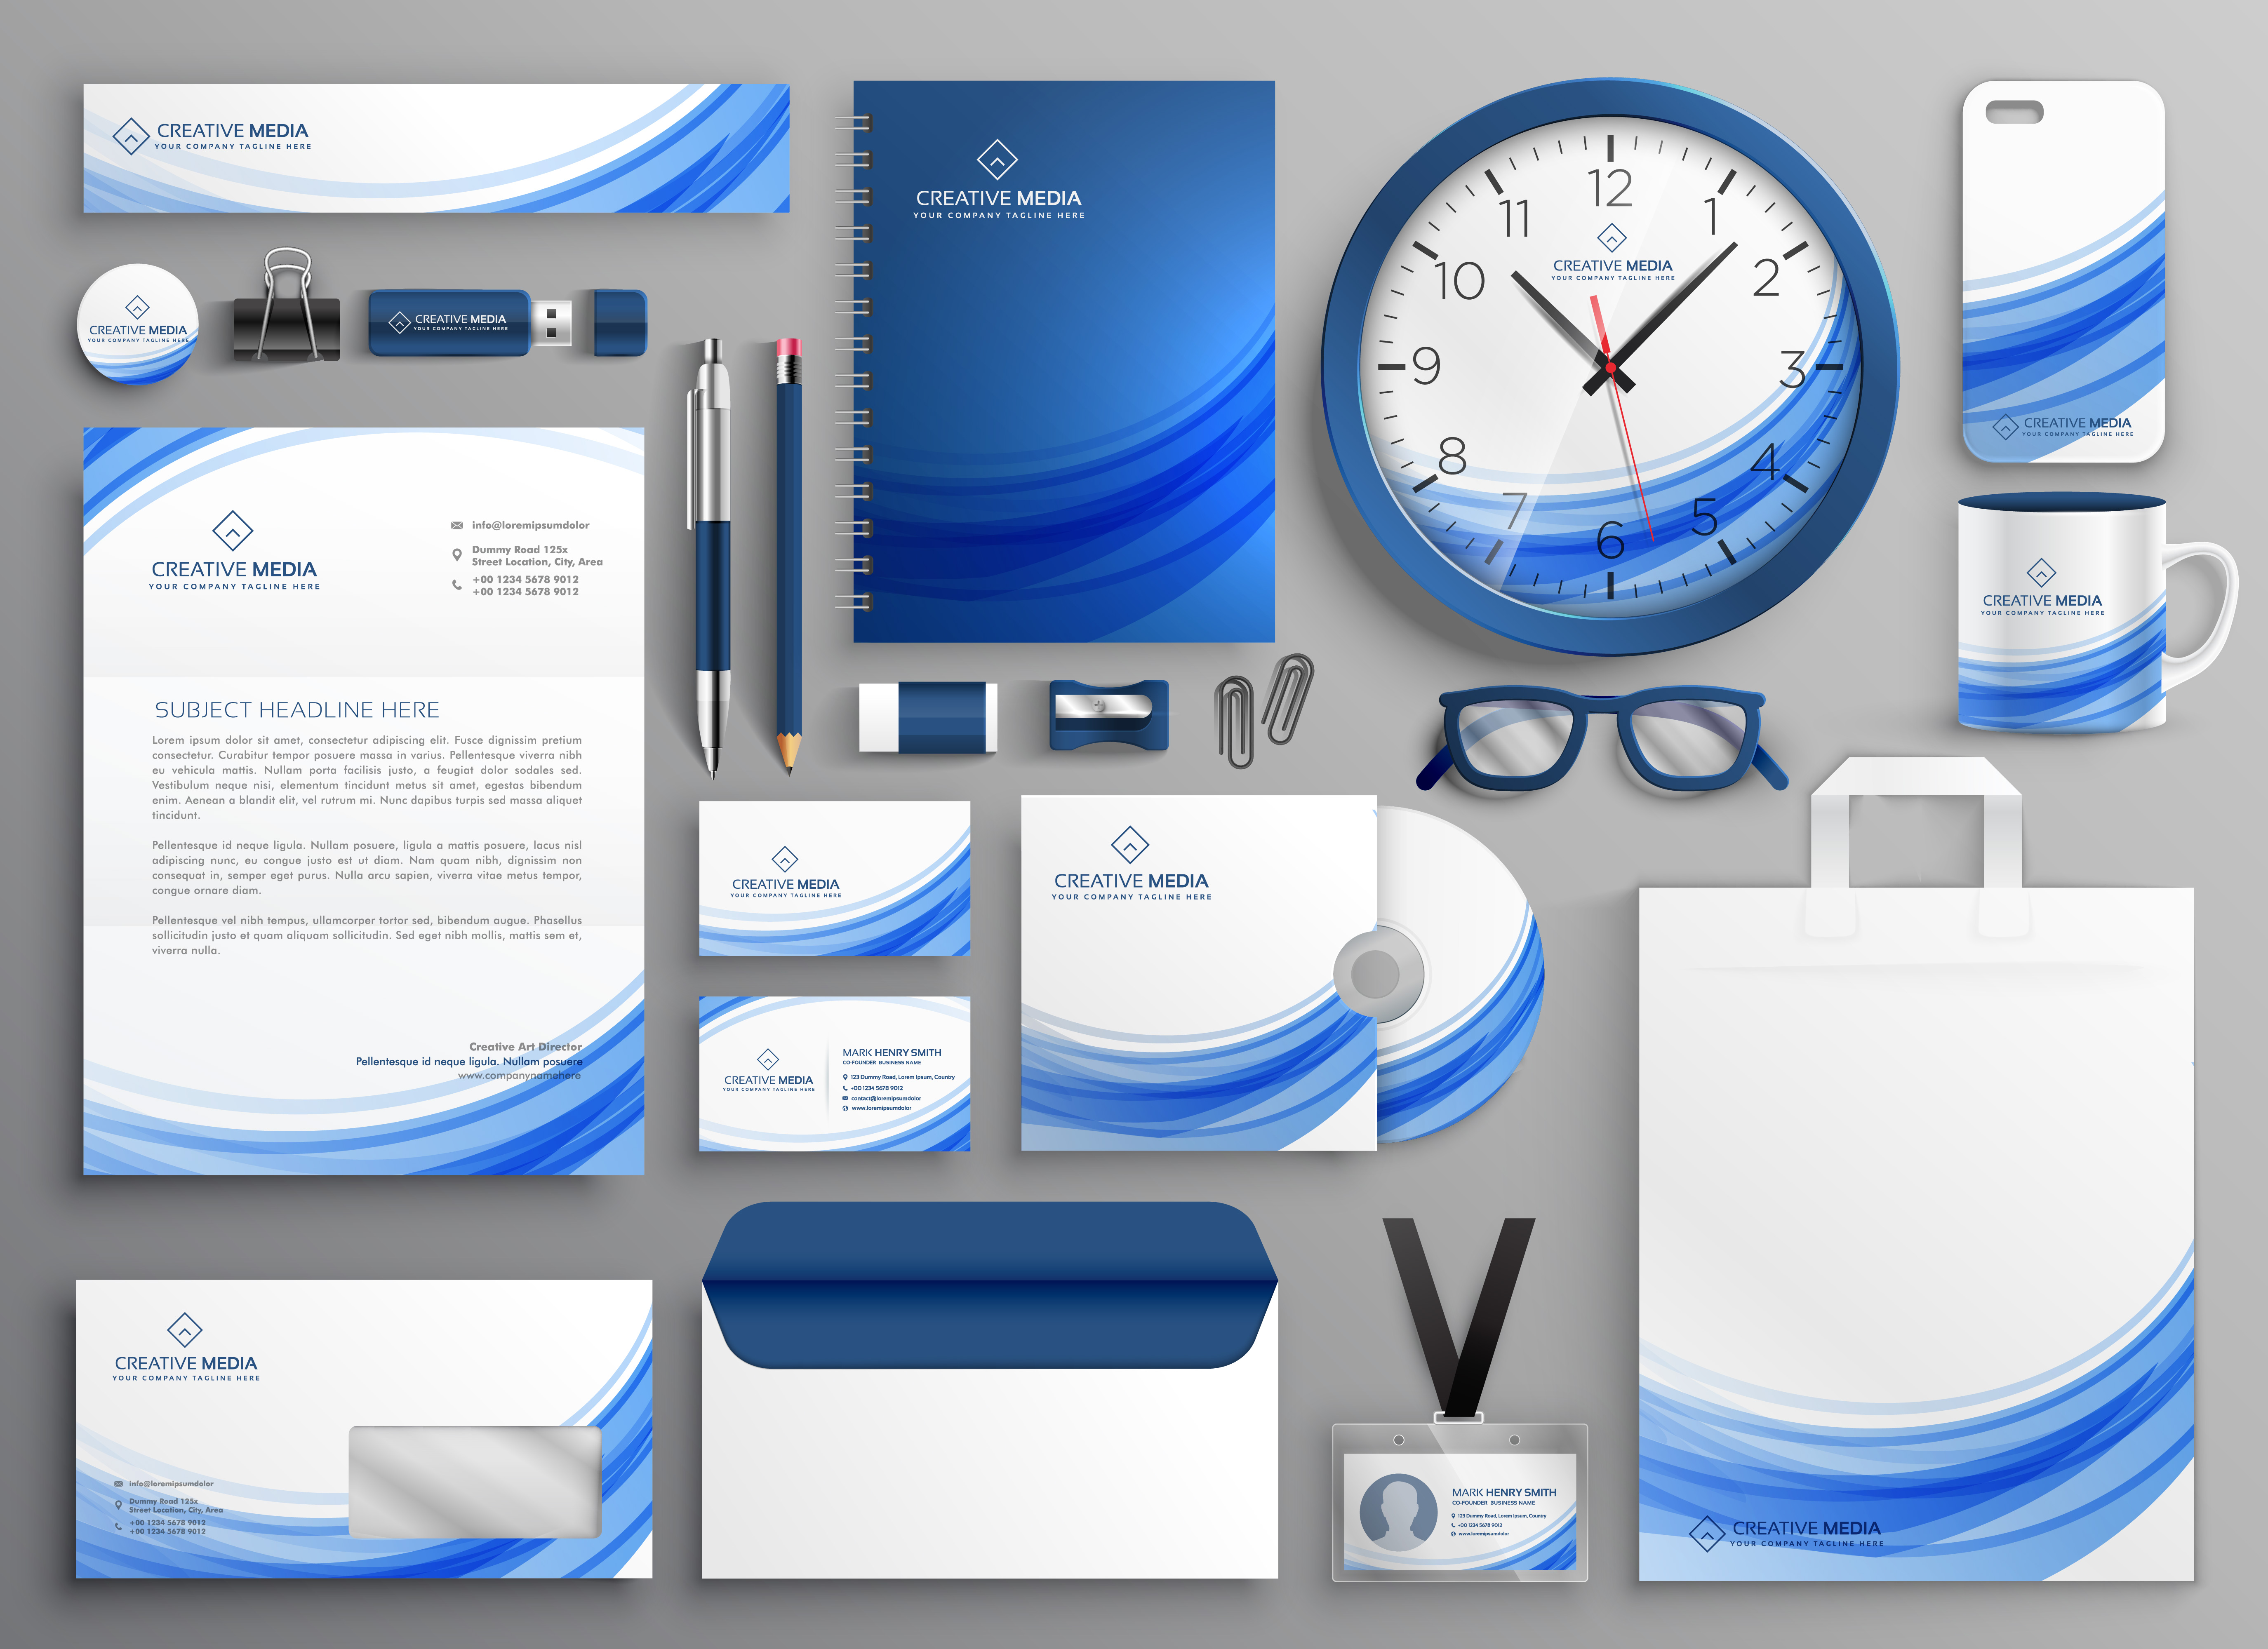 nd-identity-business-stationery-set-in-blue-wavy-shape-vector Letter Template On Head on acenda health, trellis company, professional media, academy hospitality tourism, my family twitter, it department,